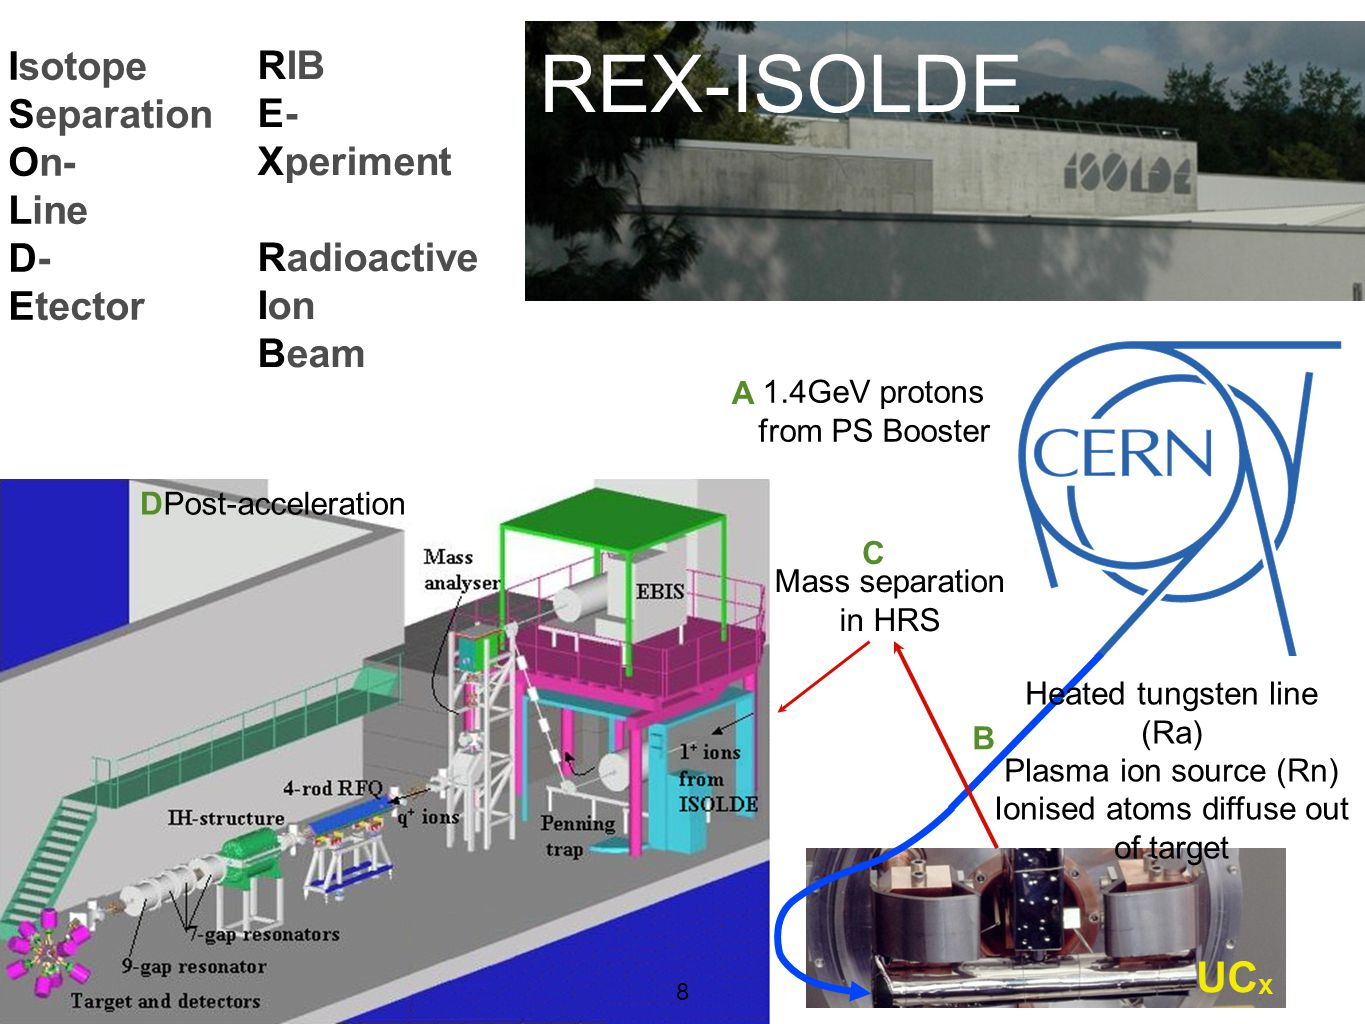 8 REX-ISOLDE Isotope Separation On- Line D- Etector RIB E- Xperiment Radioactive Ion Beam 1.4GeV protons from PS Booster A Heated tungsten line (Ra) Plasma ion source (Rn) Ionised atoms diffuse out of target B Mass separation in HRS C DPost-acceleration 8 UC x